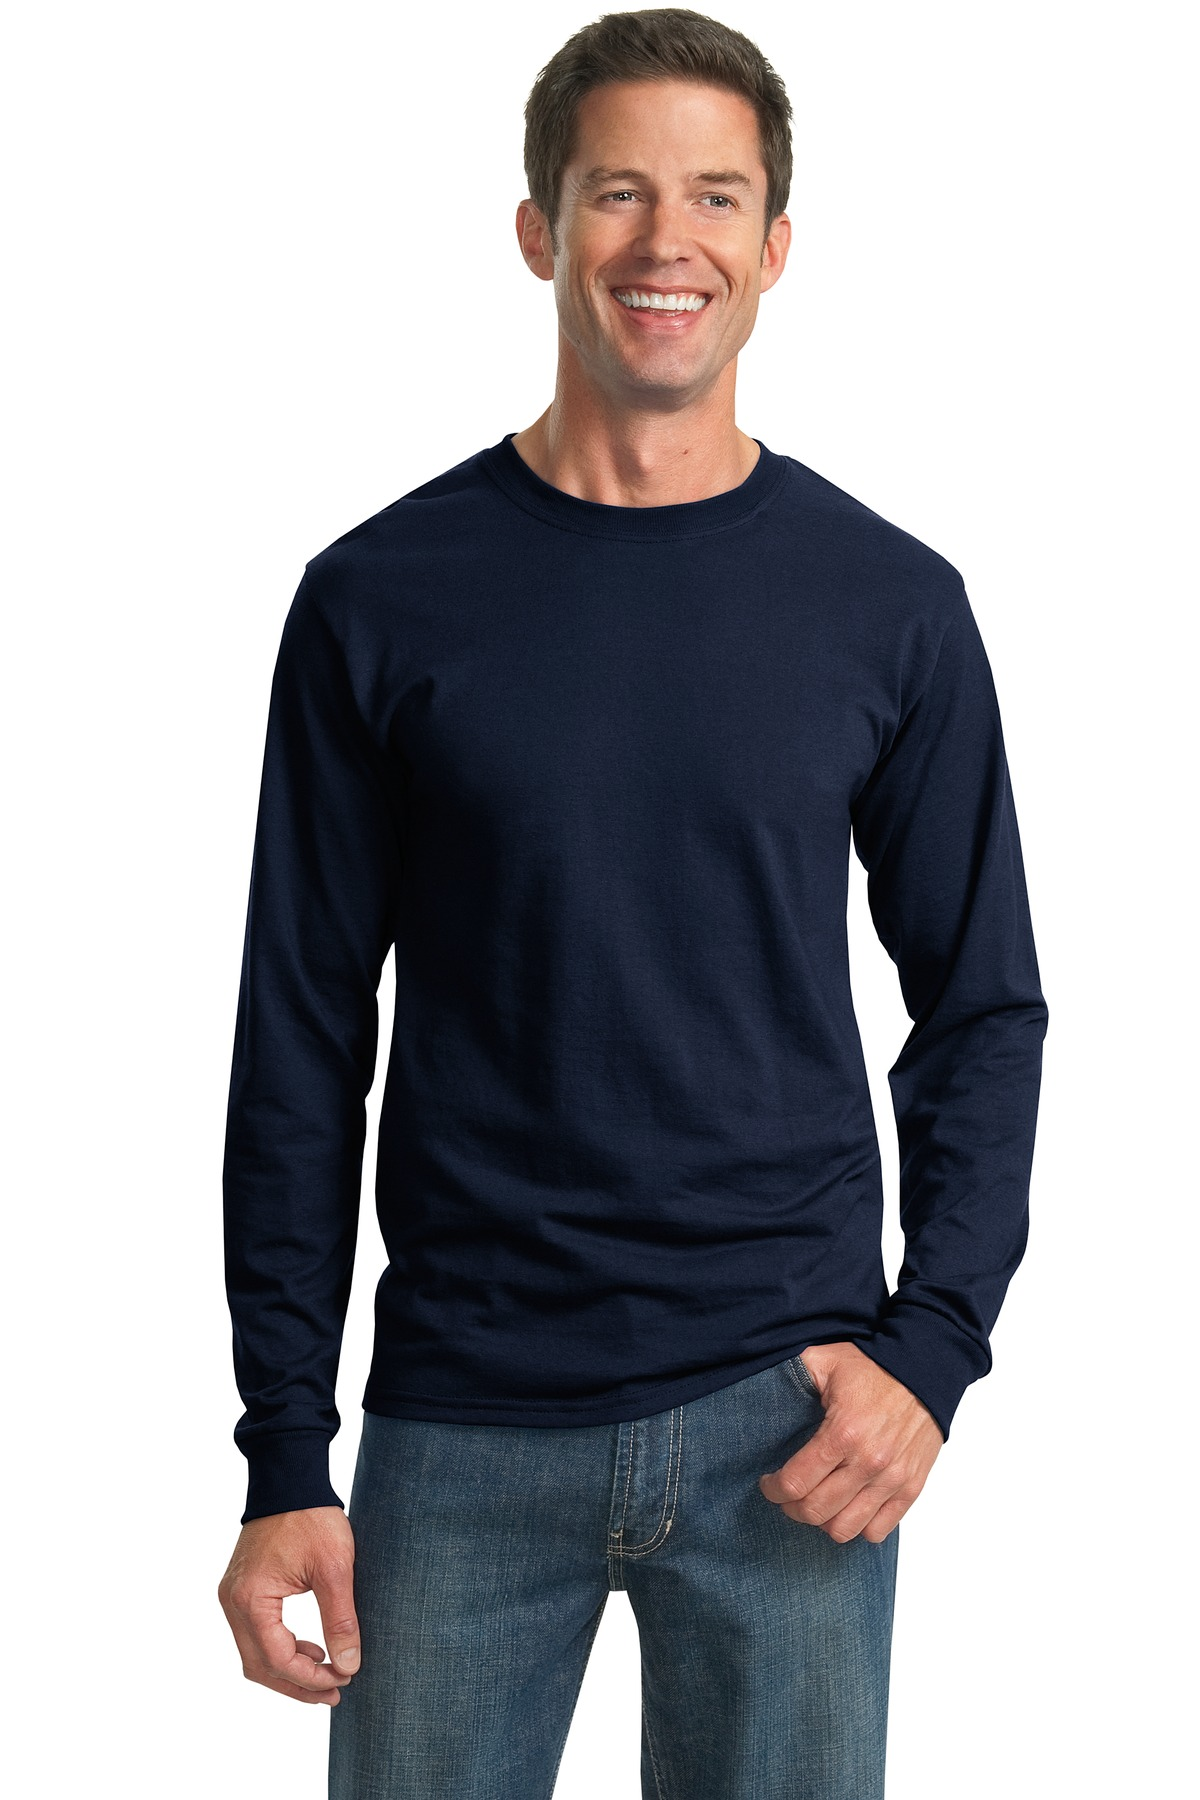 JERZEES ®  - Dri-Power ®  50/50 Cotton/Poly Long Sleeve T-Shirt.  29LS - Navy